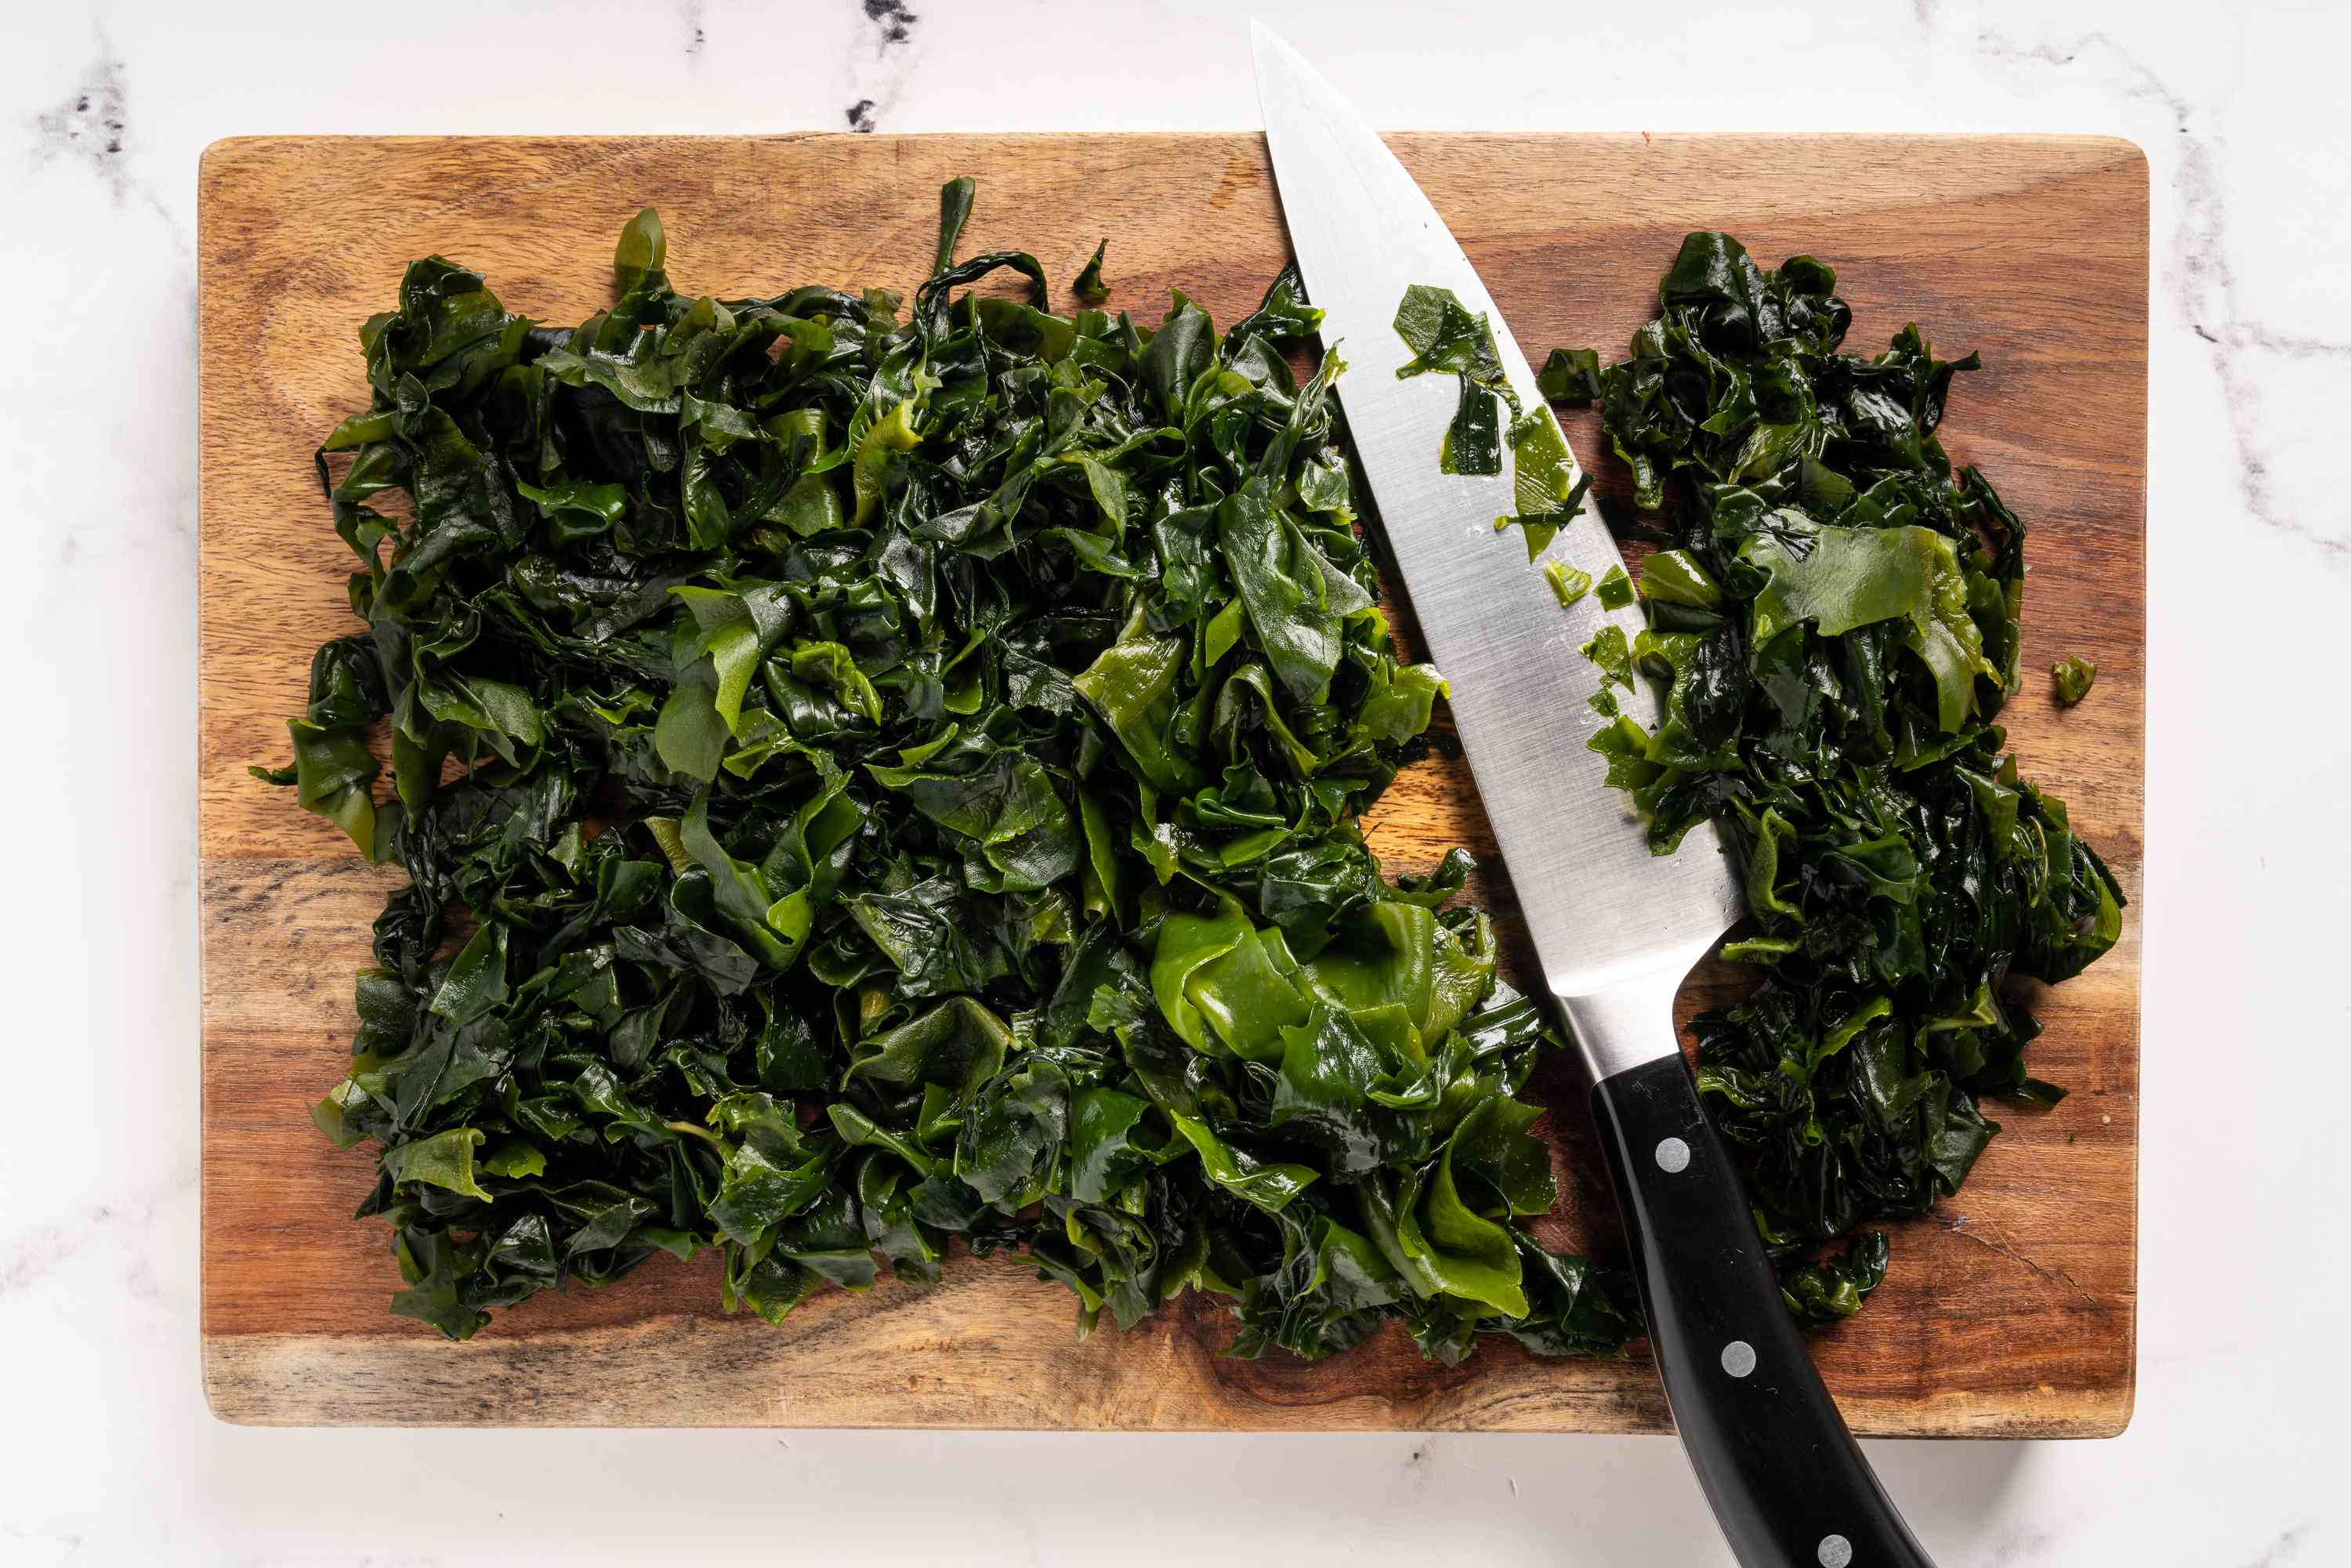 Cut the seaweed into 2-inch pieces